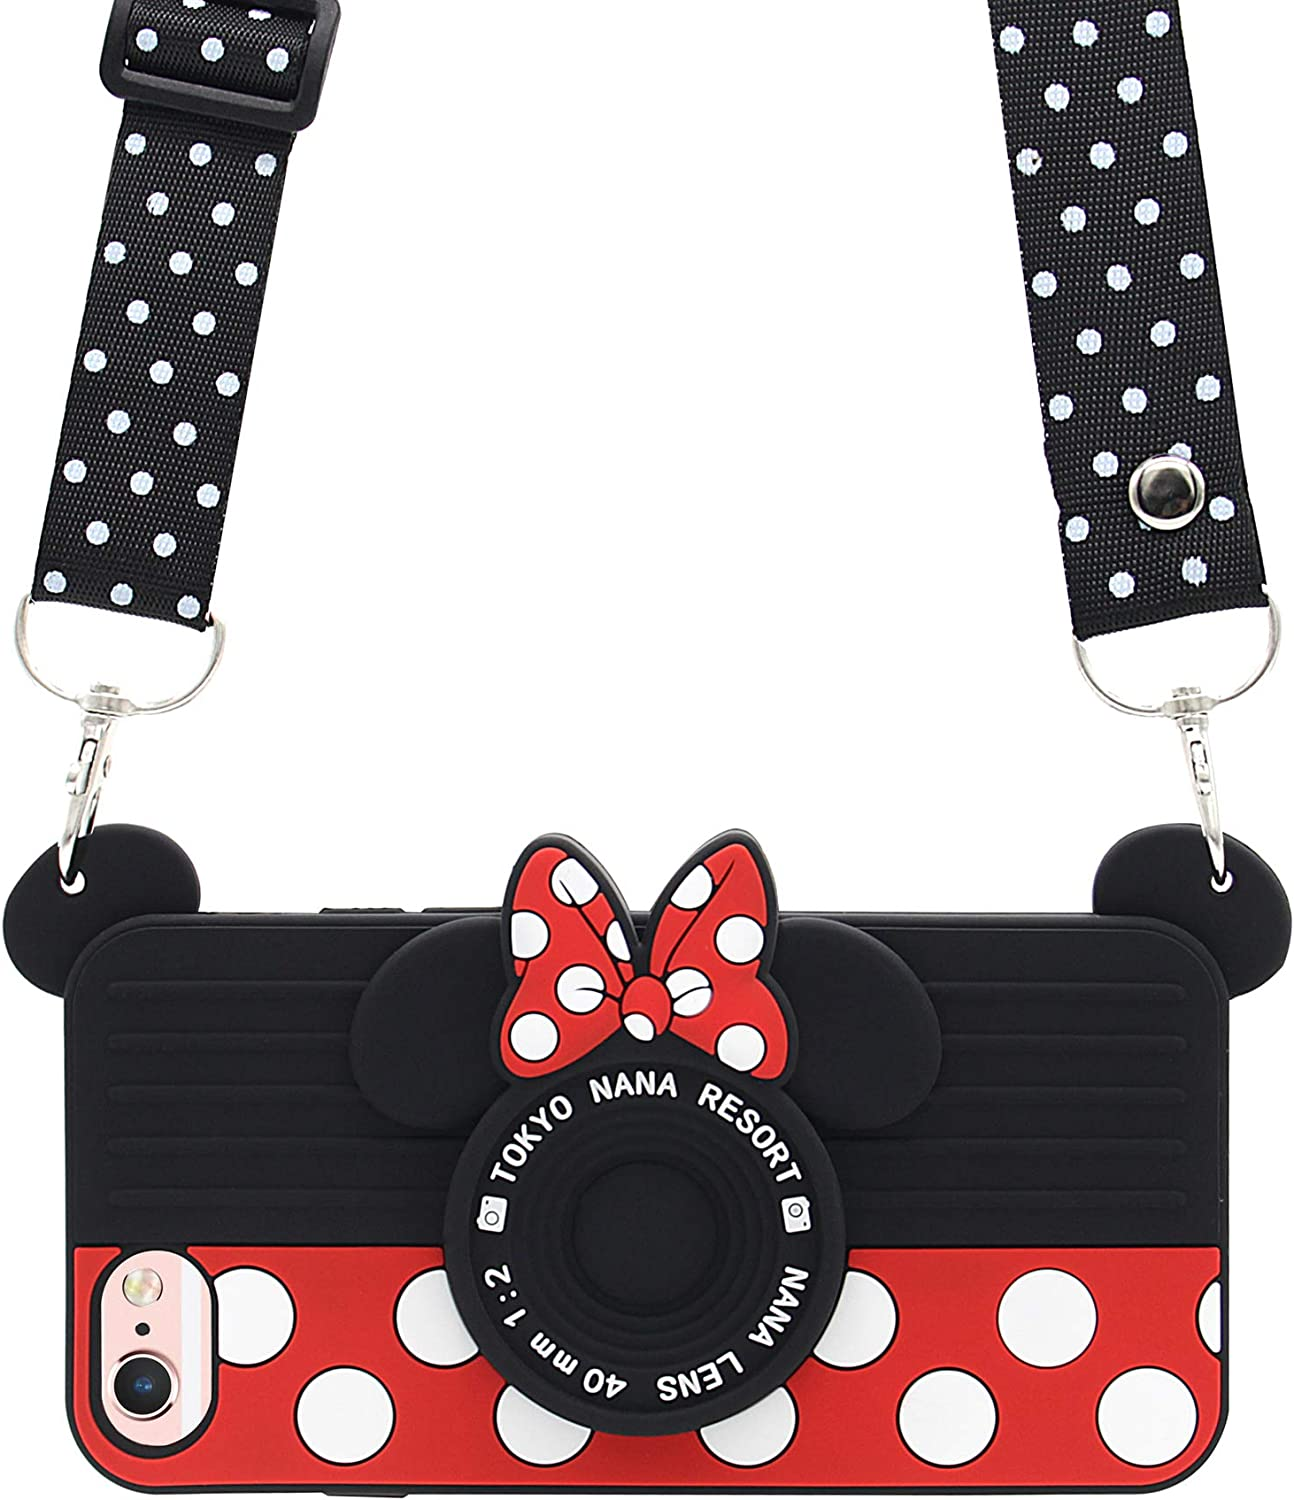 iPhone 6 Case, iPhone 6s Case, MC Fashion Cute 3D Minnie Mouse Polka Dots Camera Case for Teens Girls Women, Shockproof and Protective Soft Silicone Phone Case for Apple iPhone 6/6s (4.7-Inch)